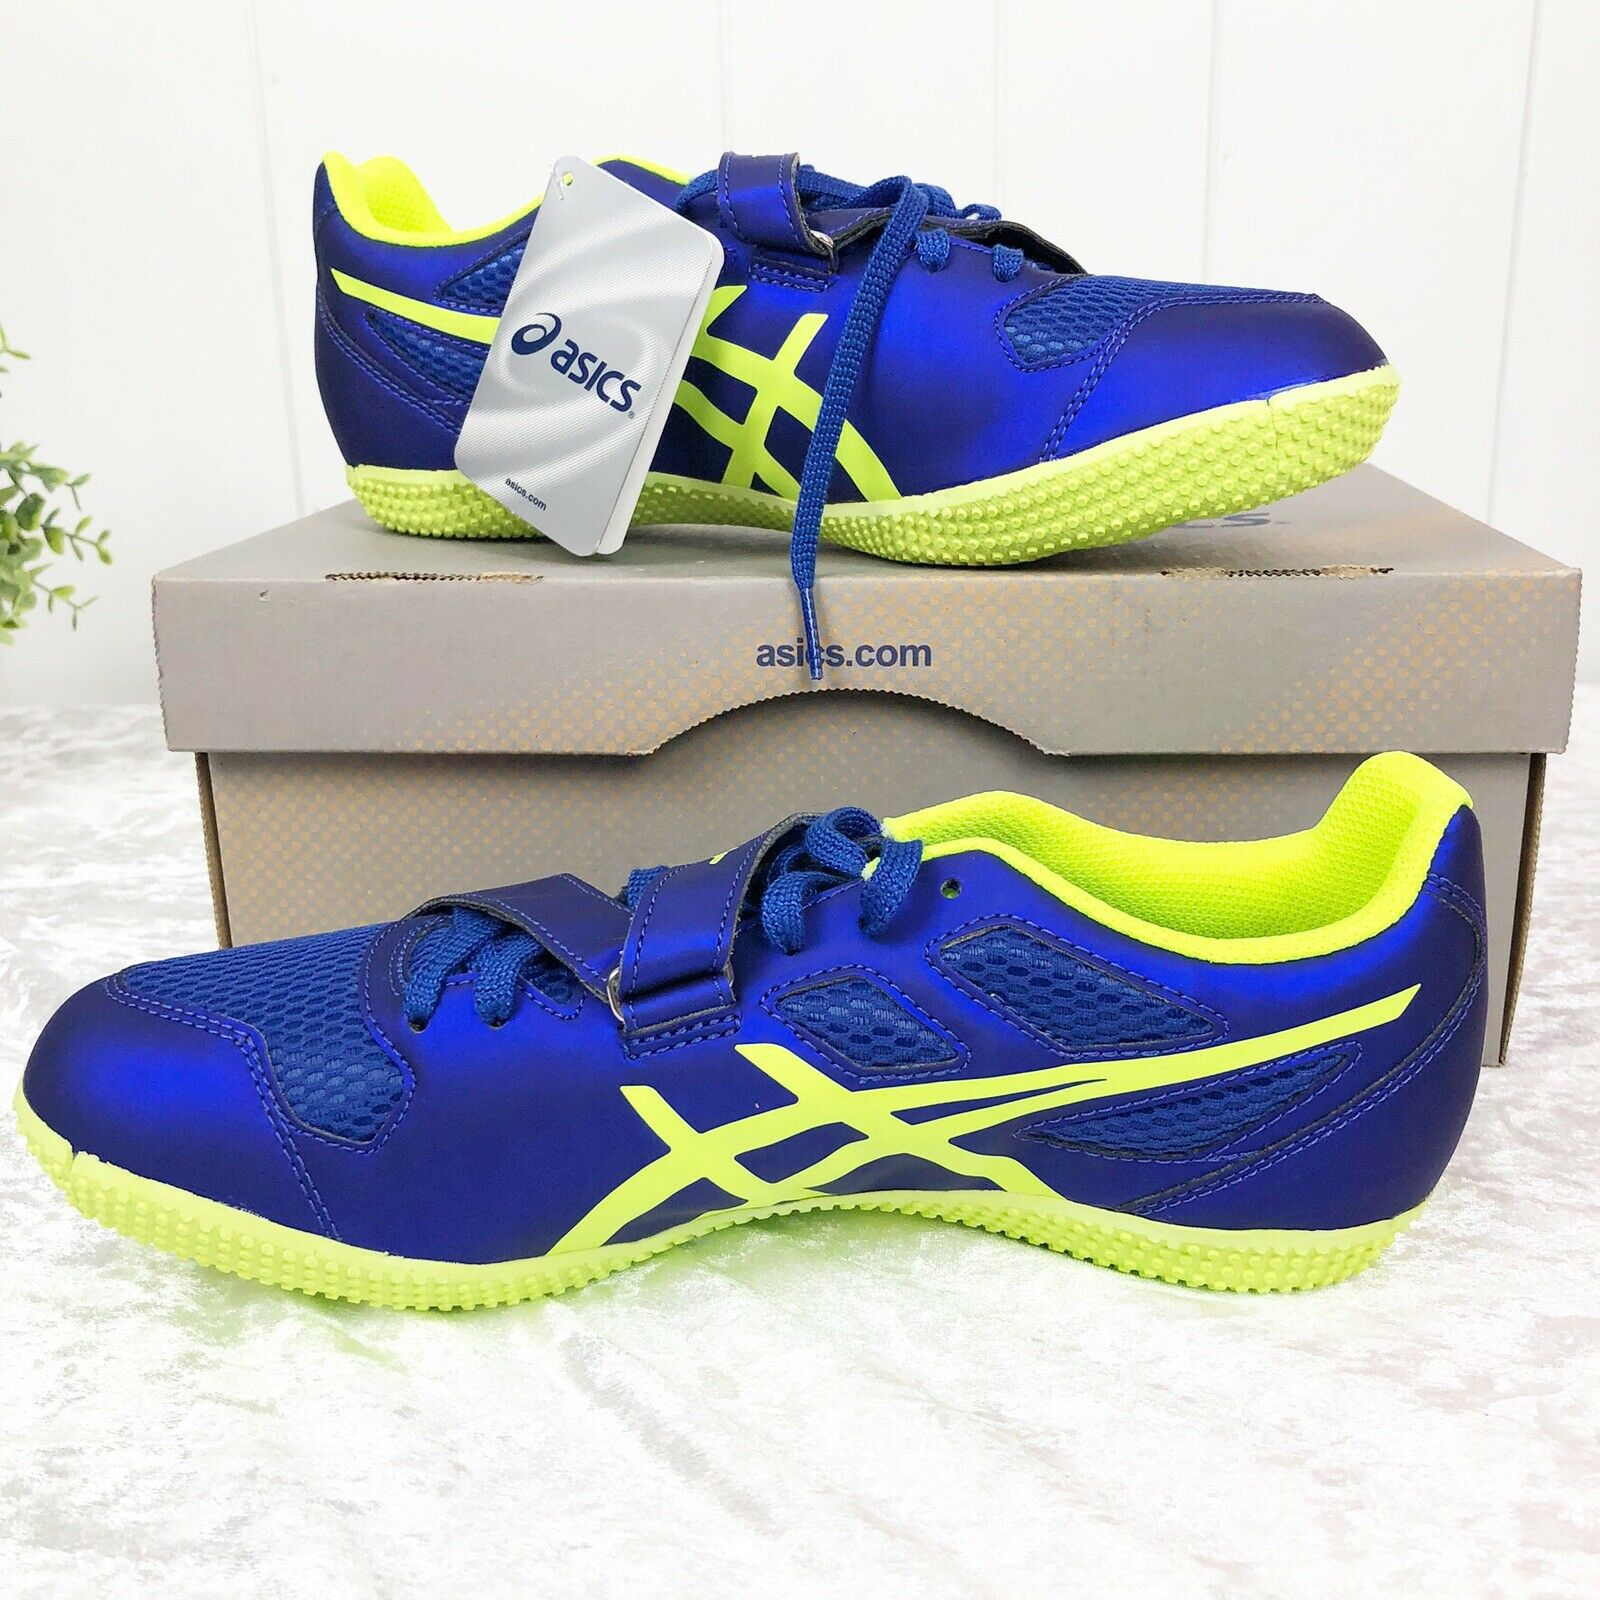 ASICS Turbo High Jump 2 Discontinued Track Tennis shoes shoes shoes 8.5 325917